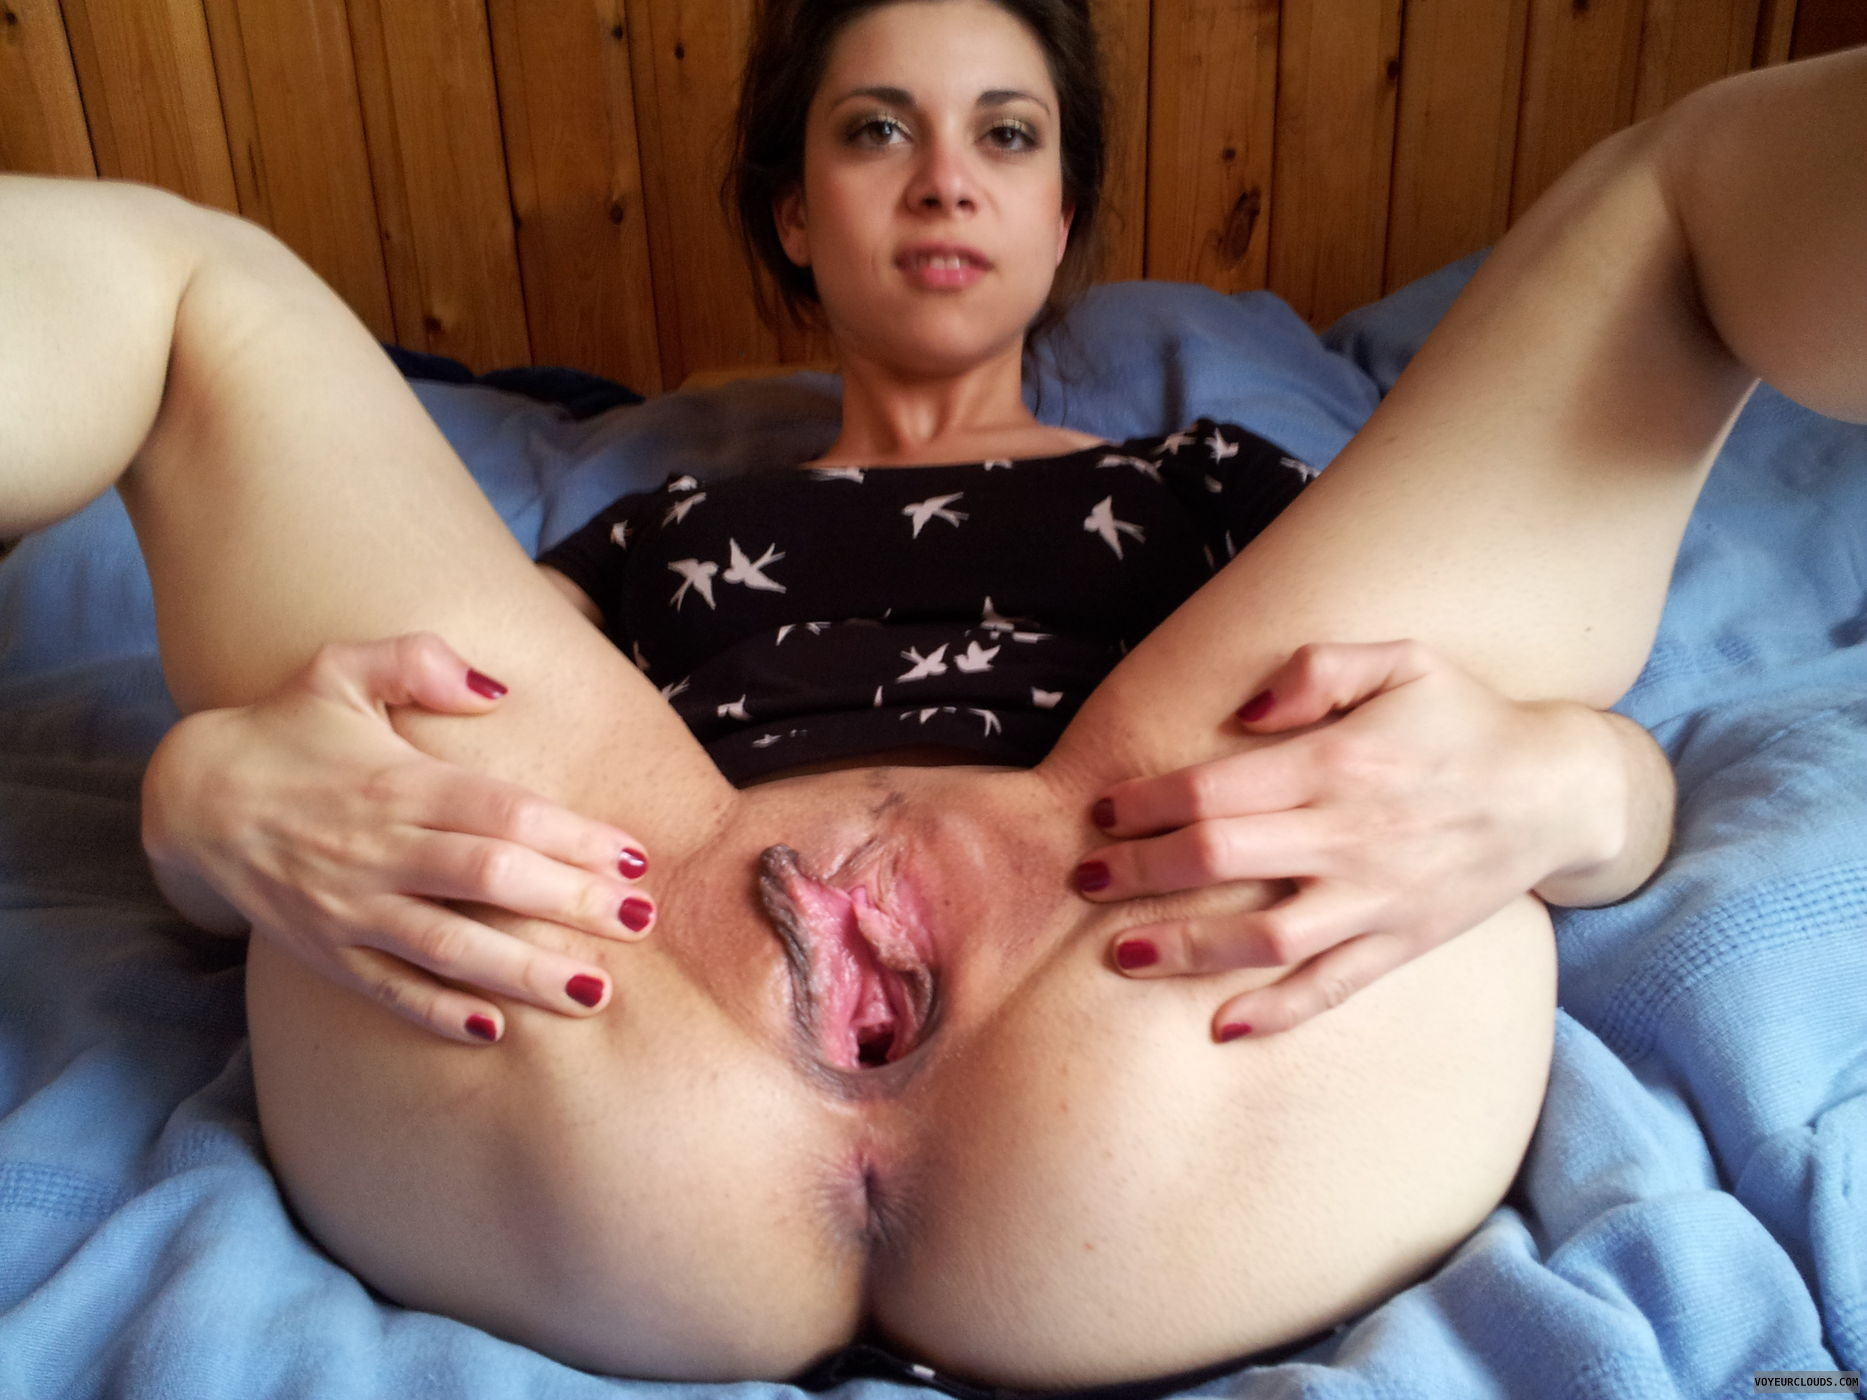 Real amateur pussy pics